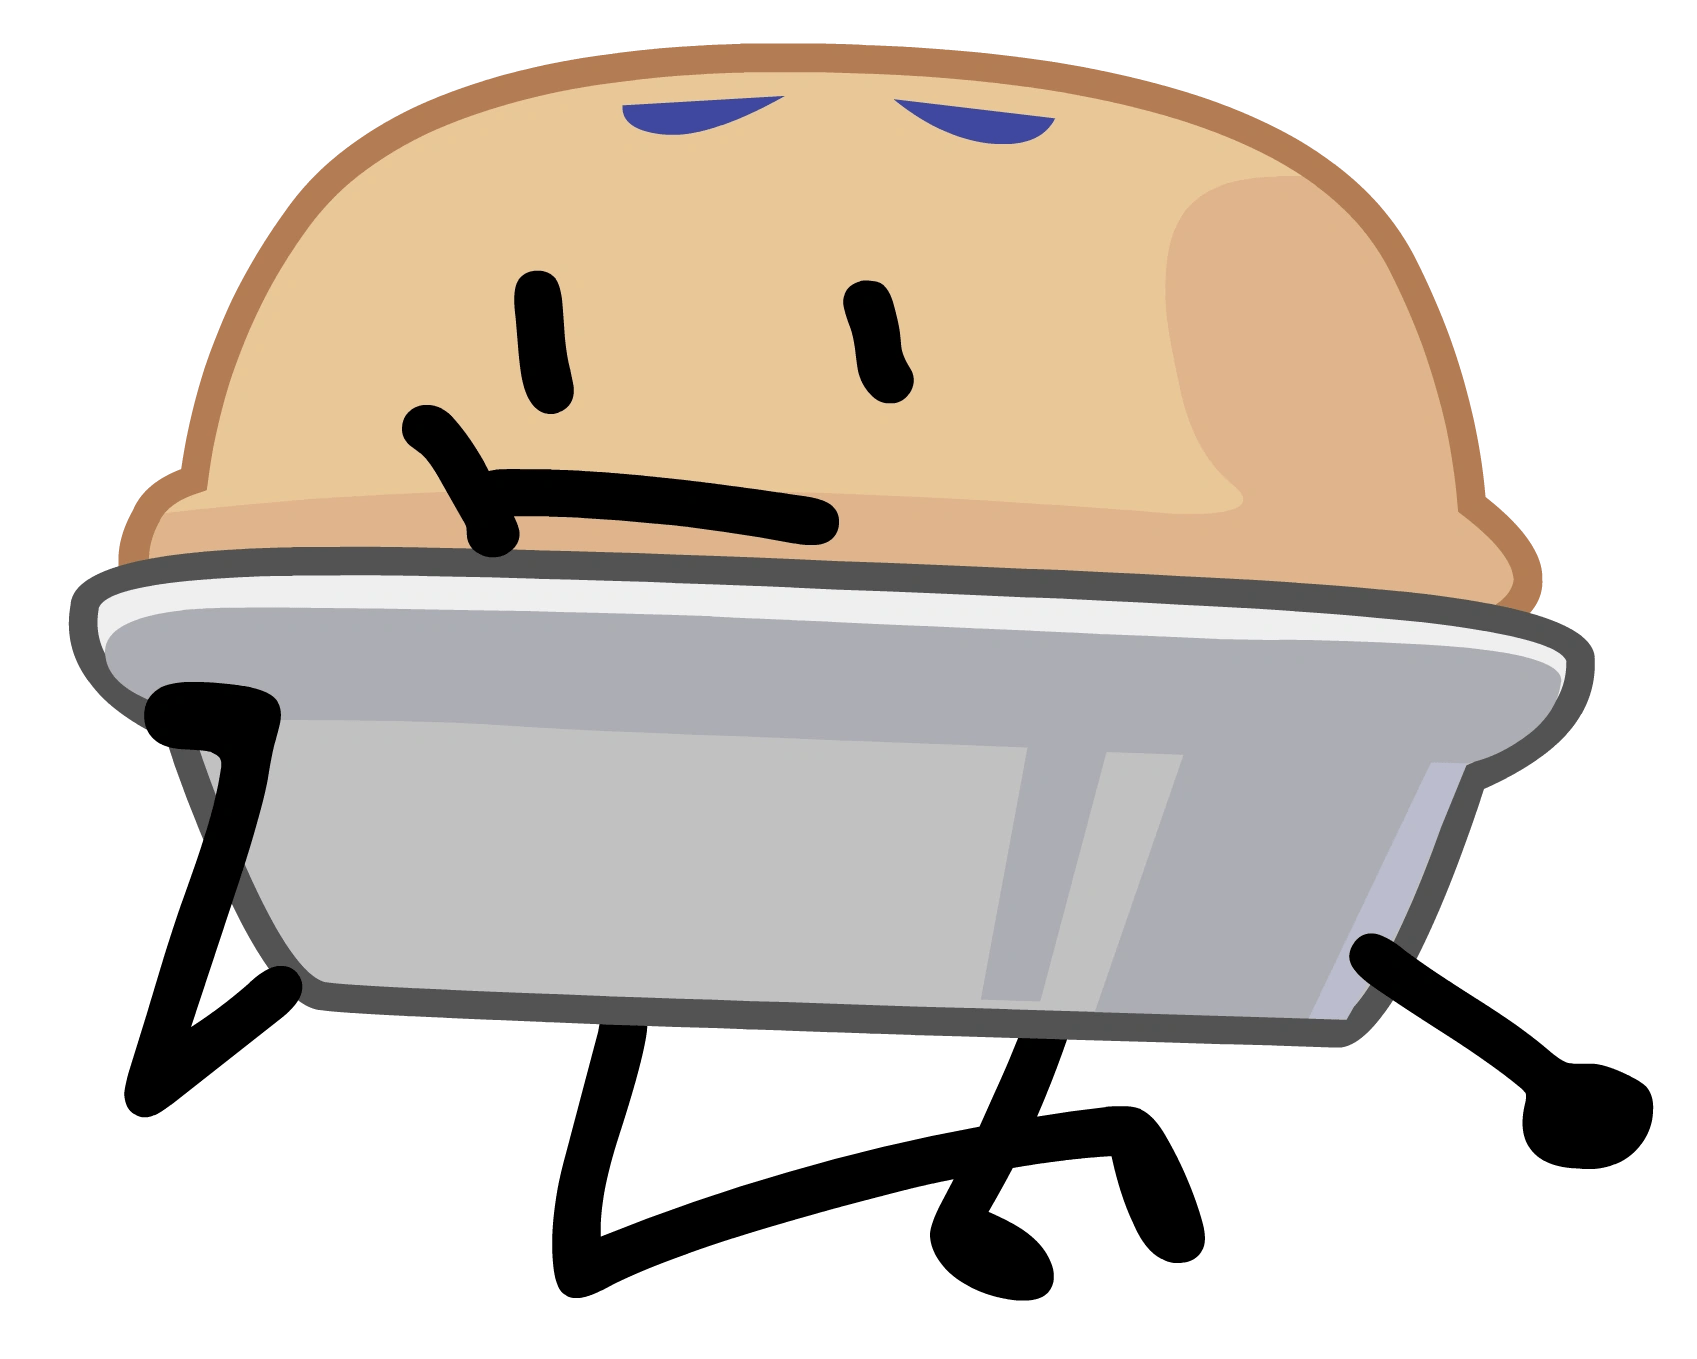 Bfdi Pie - Year of Clean Water